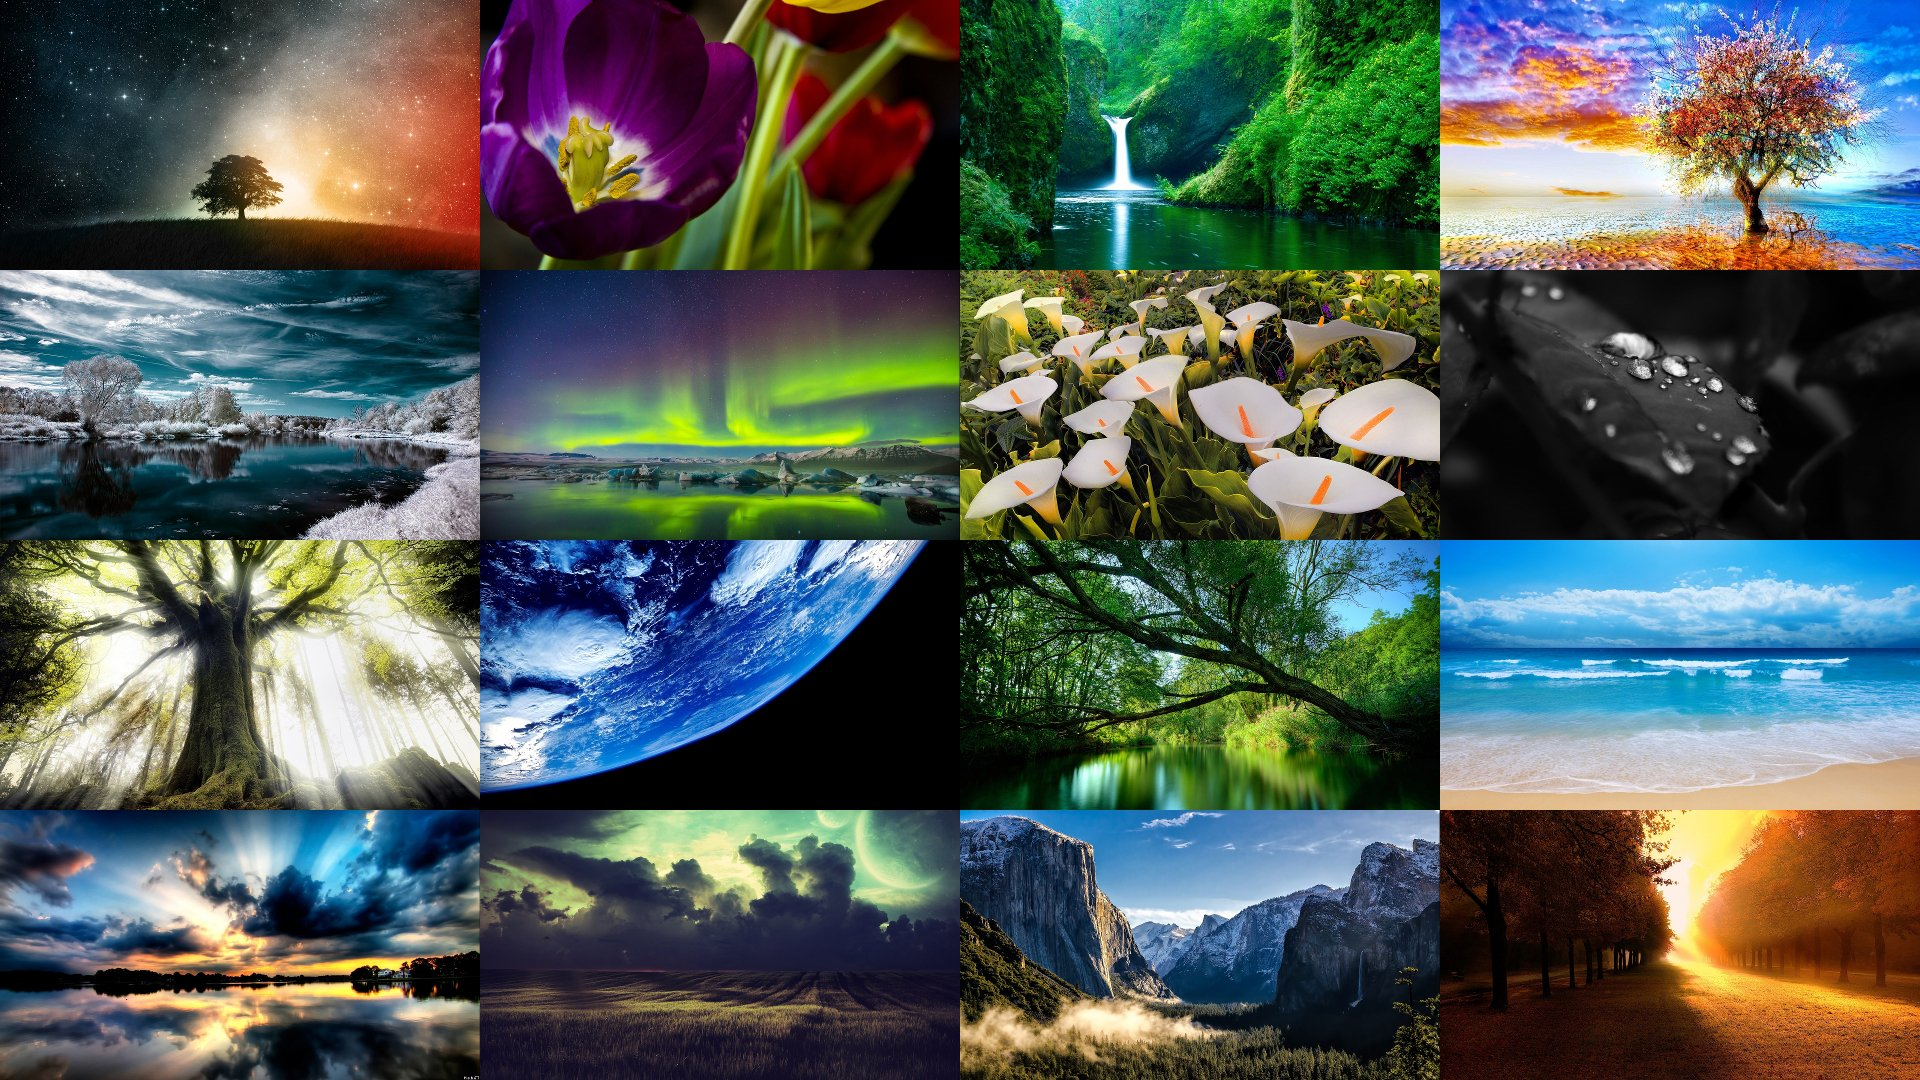 10512 4k Ultra Hd Earth Nature Wallpapers Background Images Wallpaper Abyss